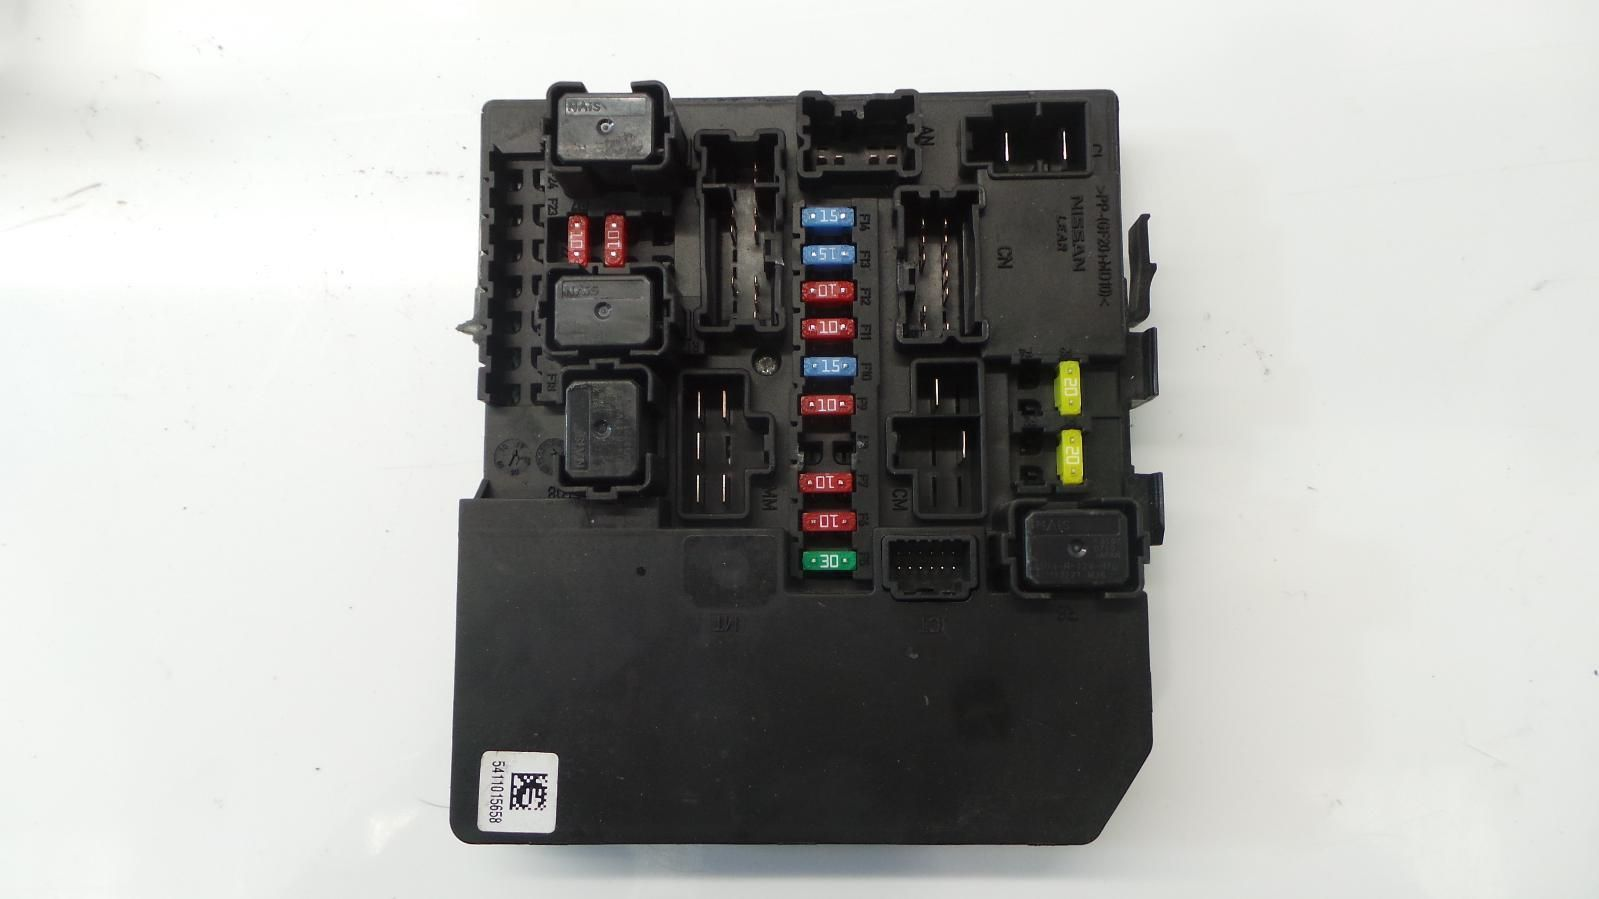 hight resolution of nissan nv200 1 5 diesel 2012 fuse box 284b7jx50a 284b7 jx50a nissan nv200 fuse box location